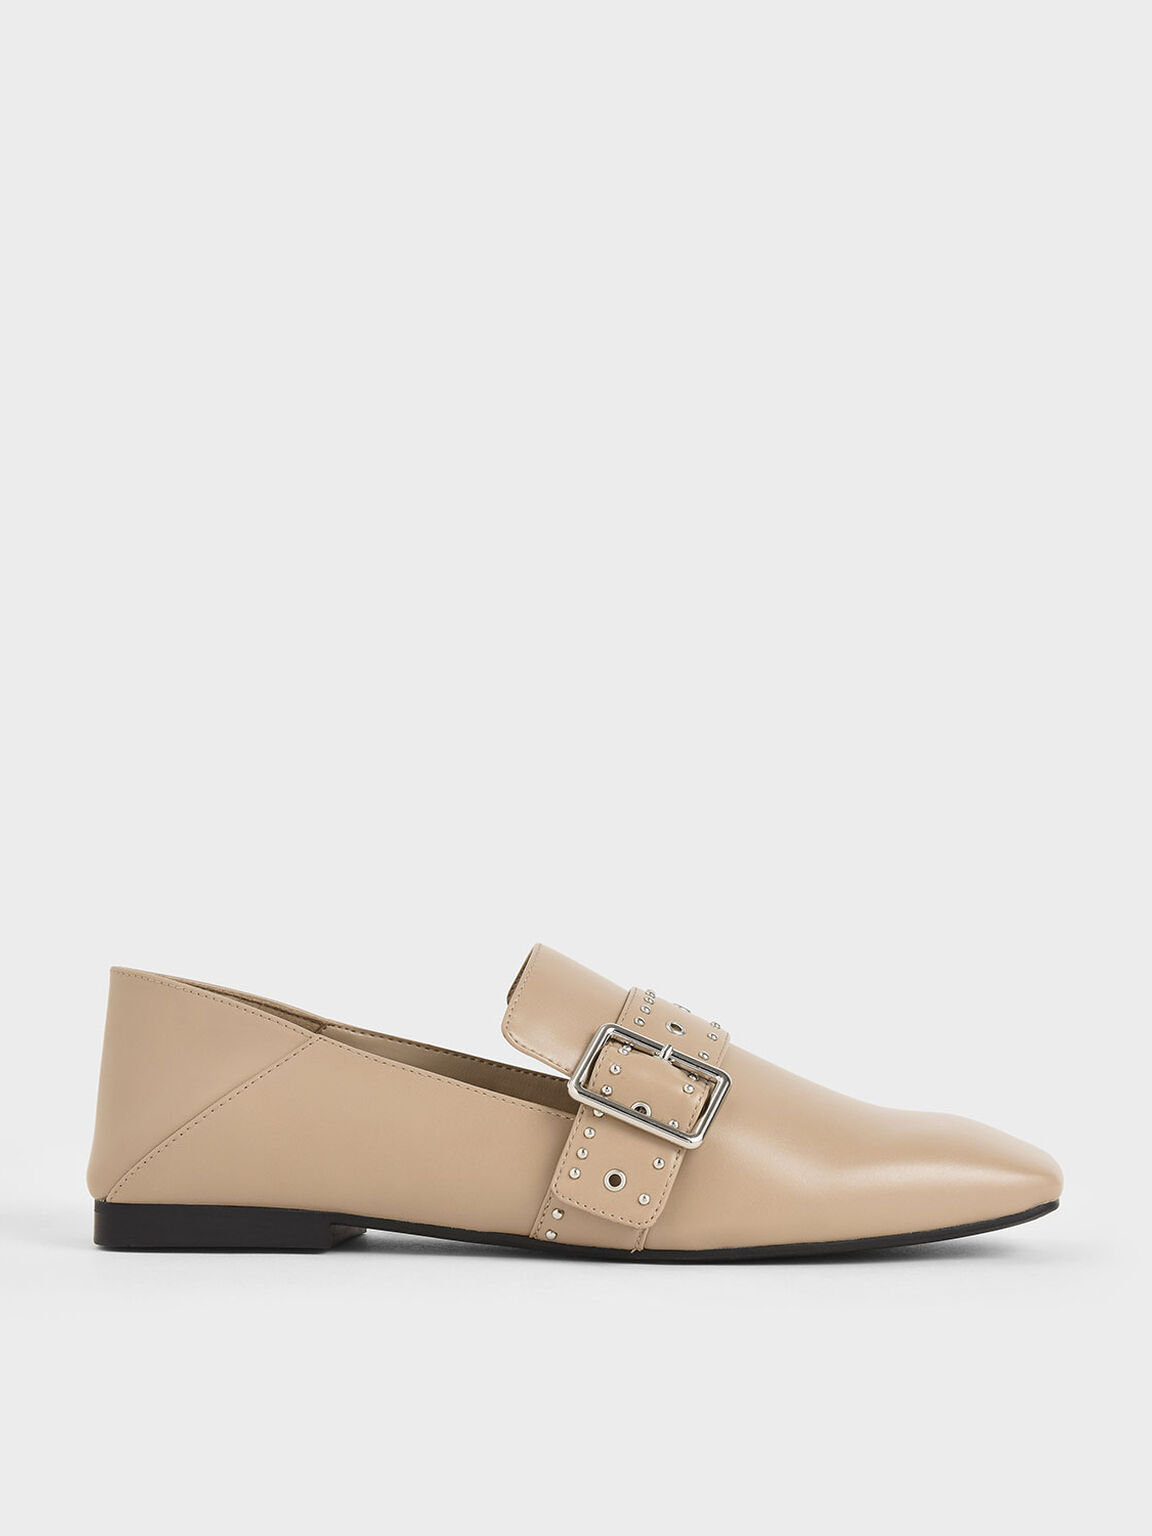 Grommet Buckle Step-Back Loafers, Nude, hi-res